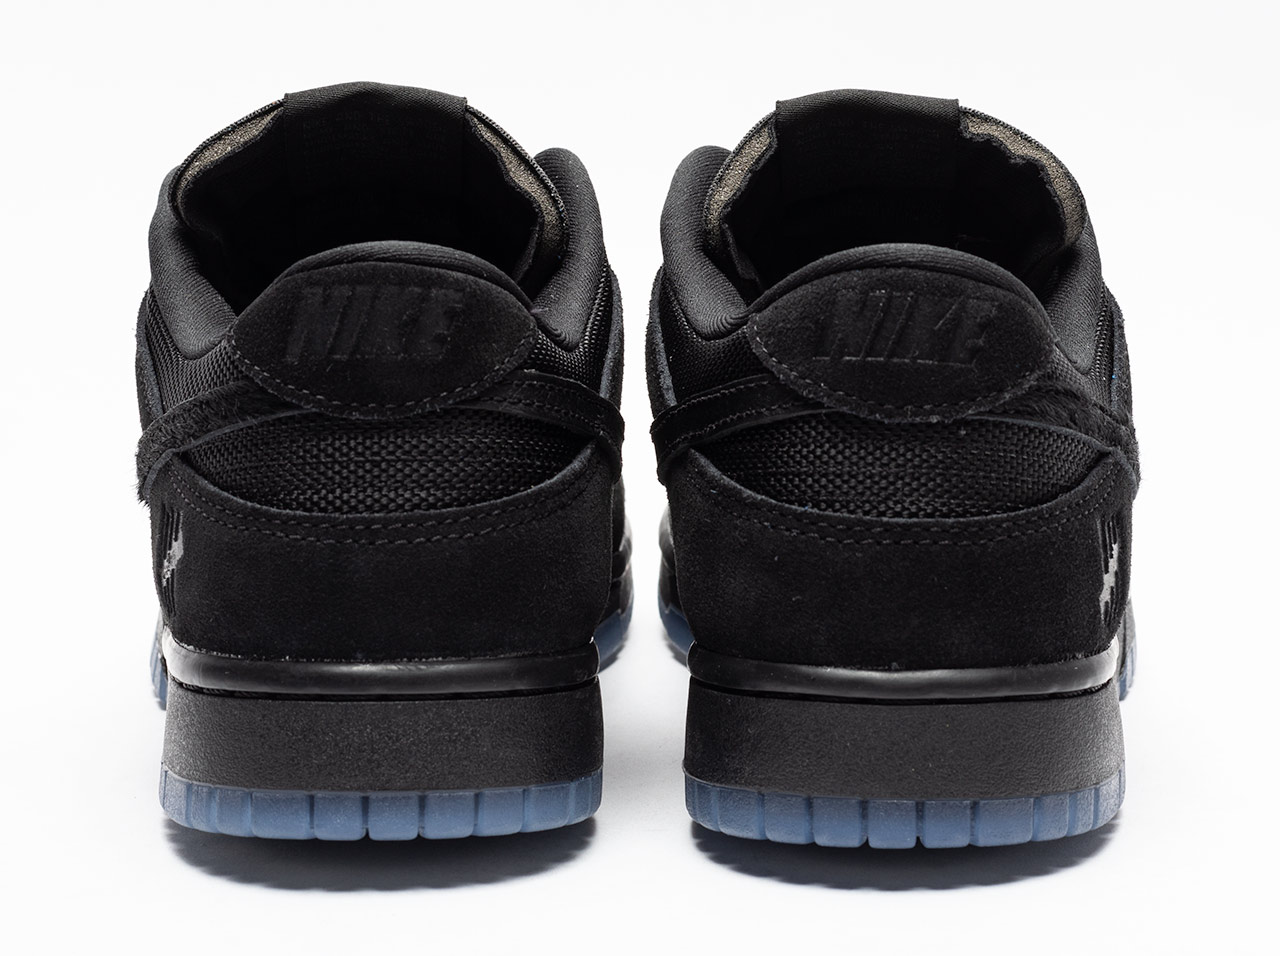 undefeated-nike-dunk-low-5-on-it-dunk-vs-af-1-do9329-001-release-20210904